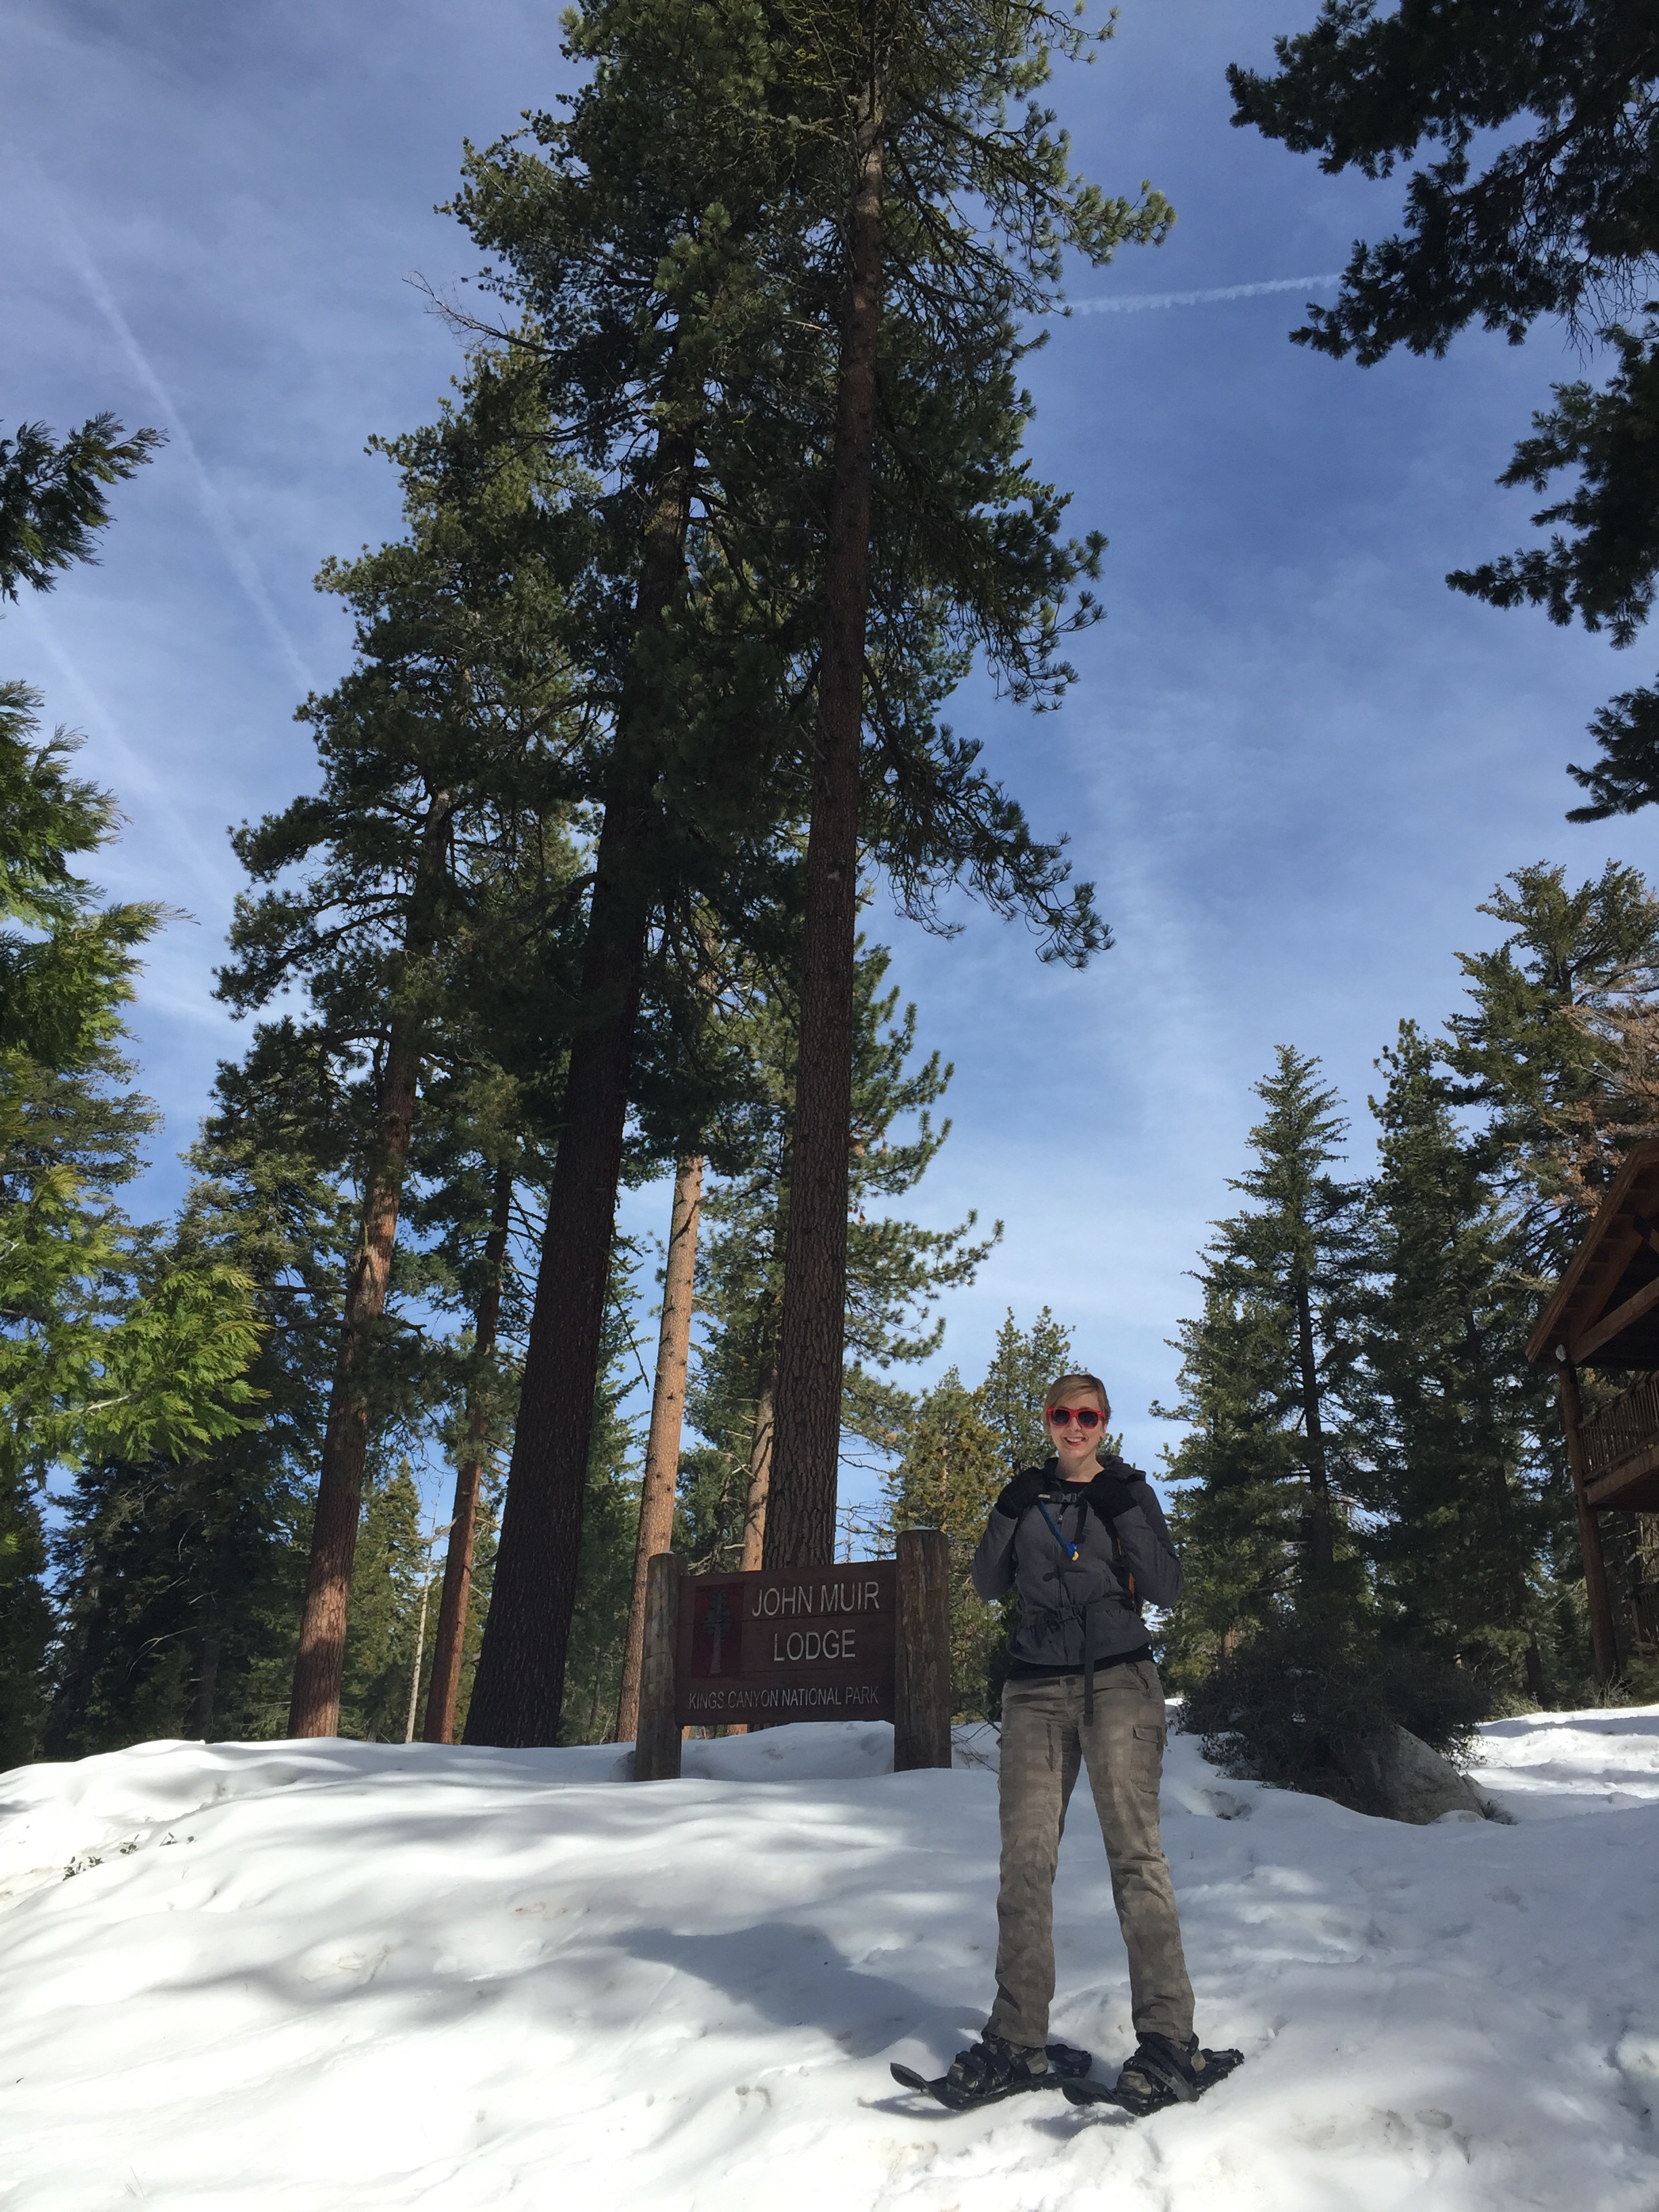 Having a long quest means tacking national park visits onto other trips. I would've never thought about going to  Kings Canyon and Sequoia national parks  in the winter, but we were so glad we did! And I learned to snowshoe.